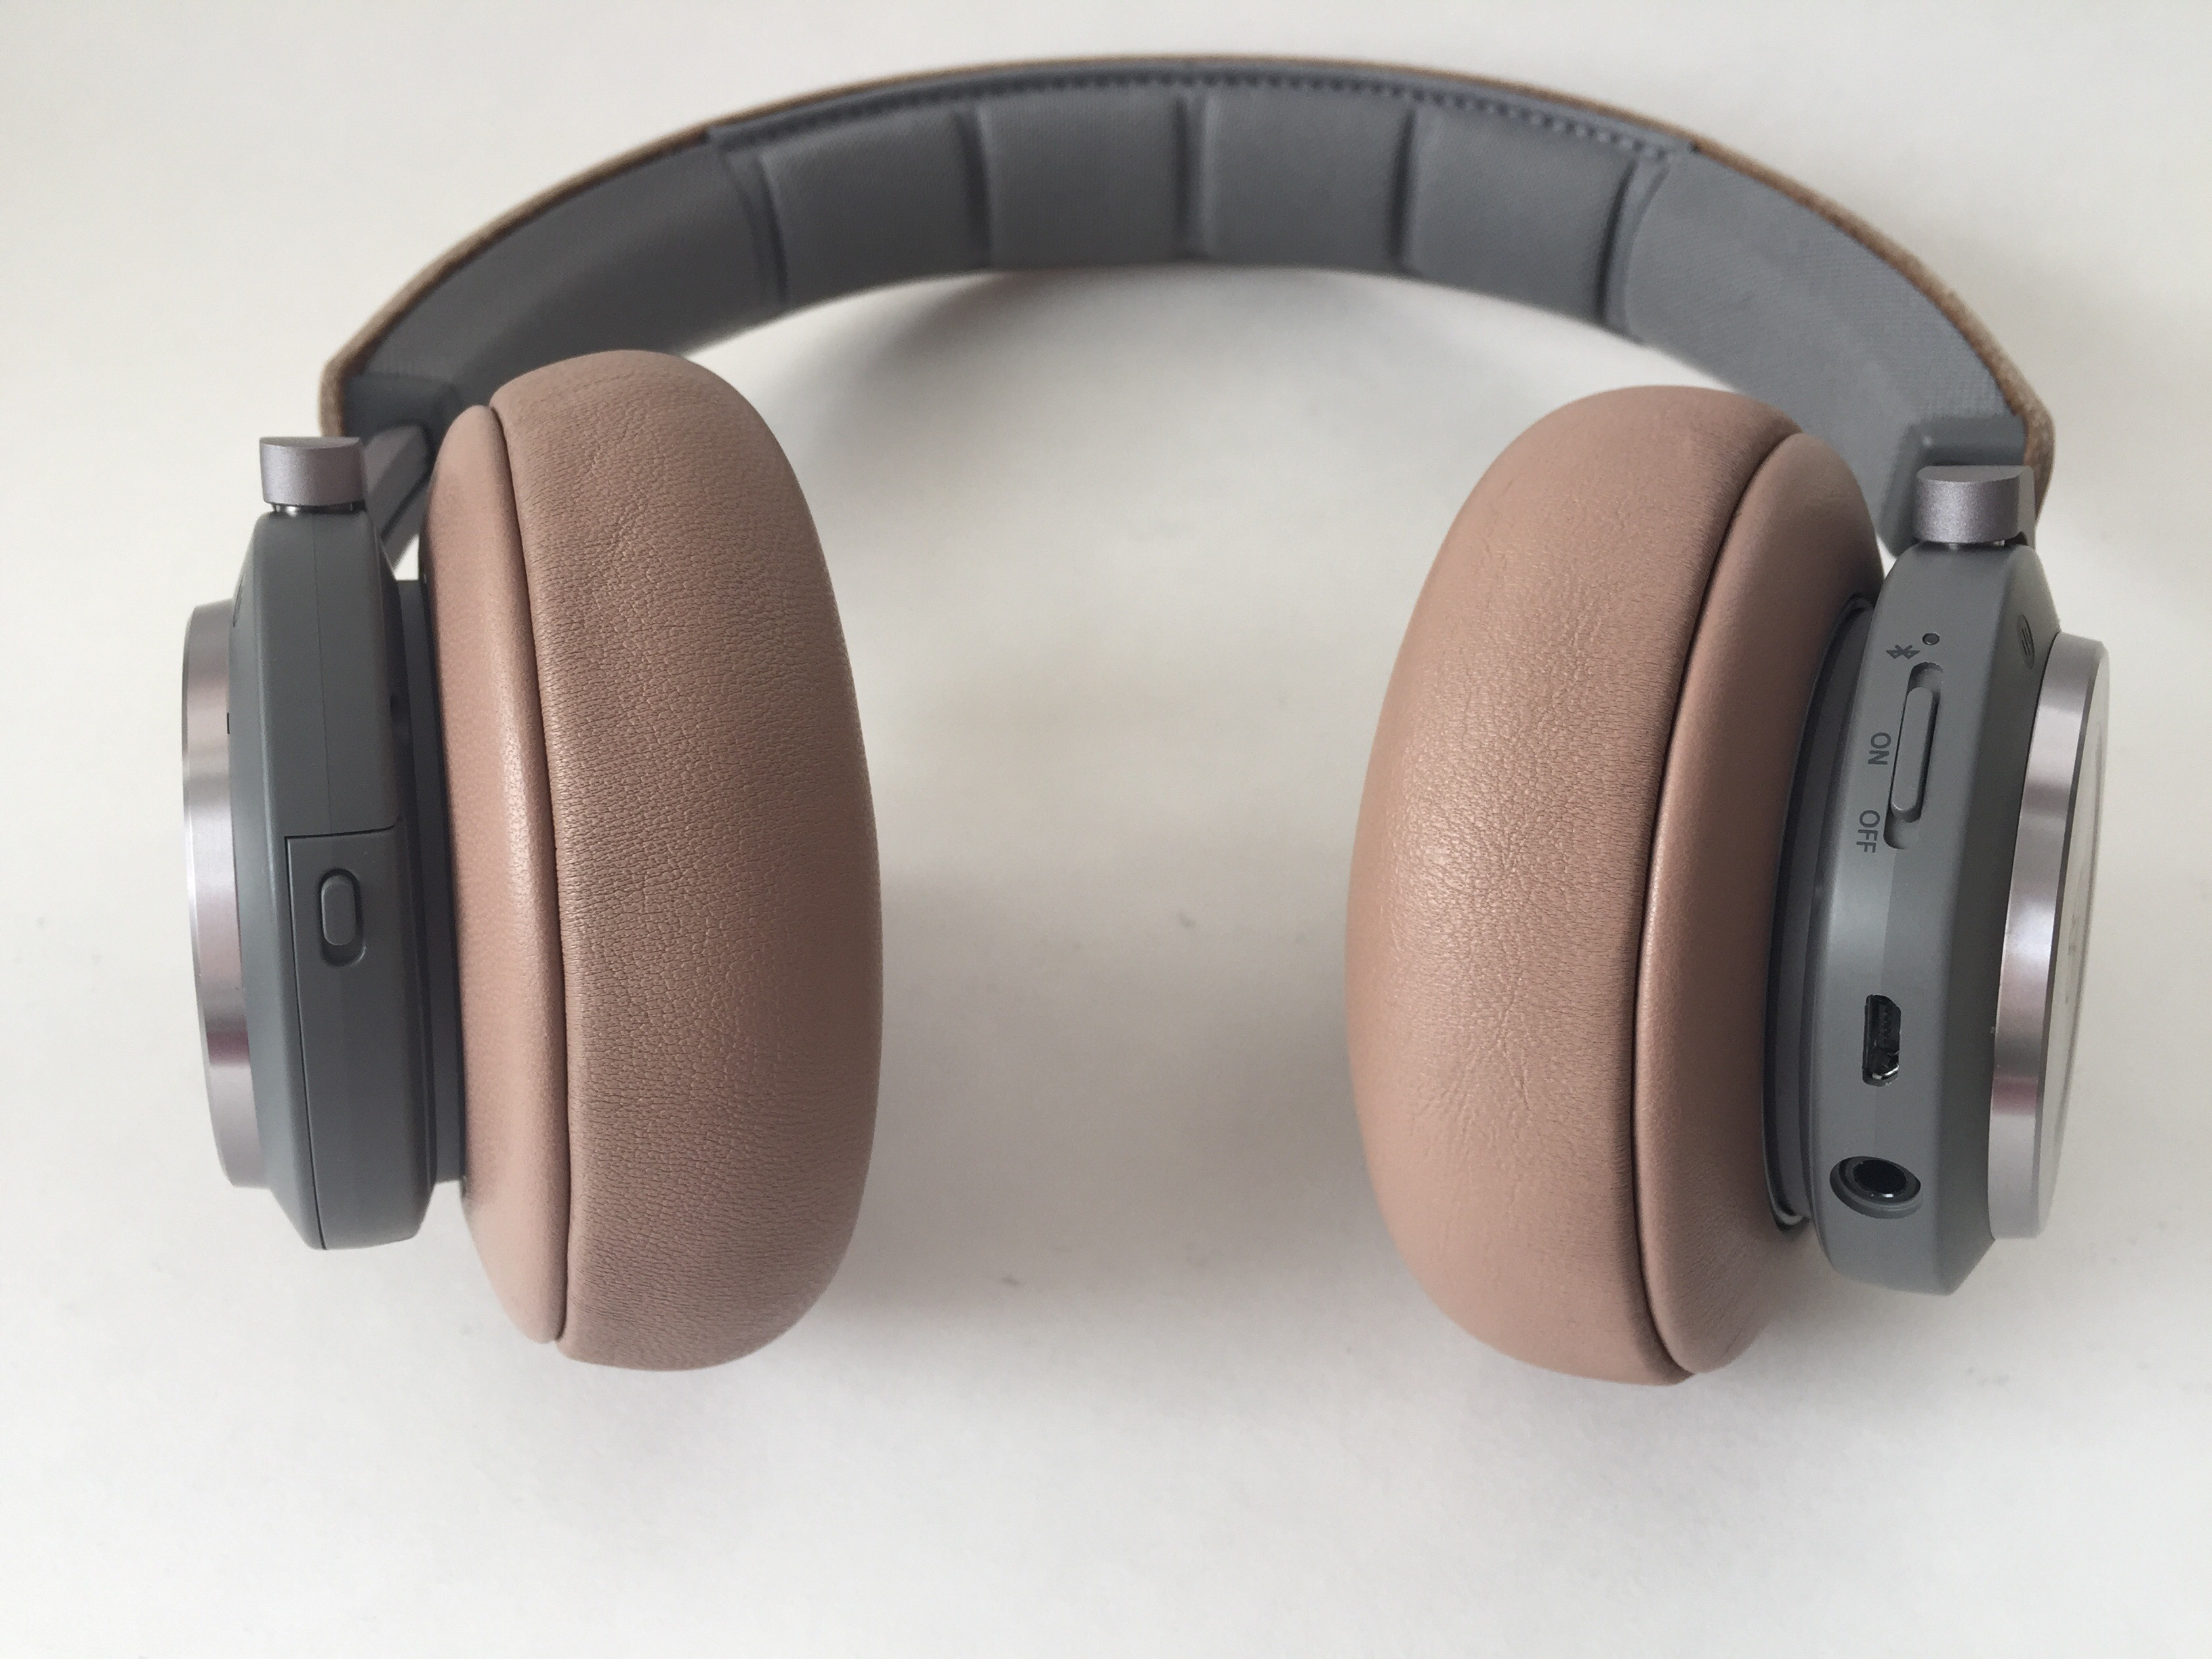 bO beoplay H9 headphones